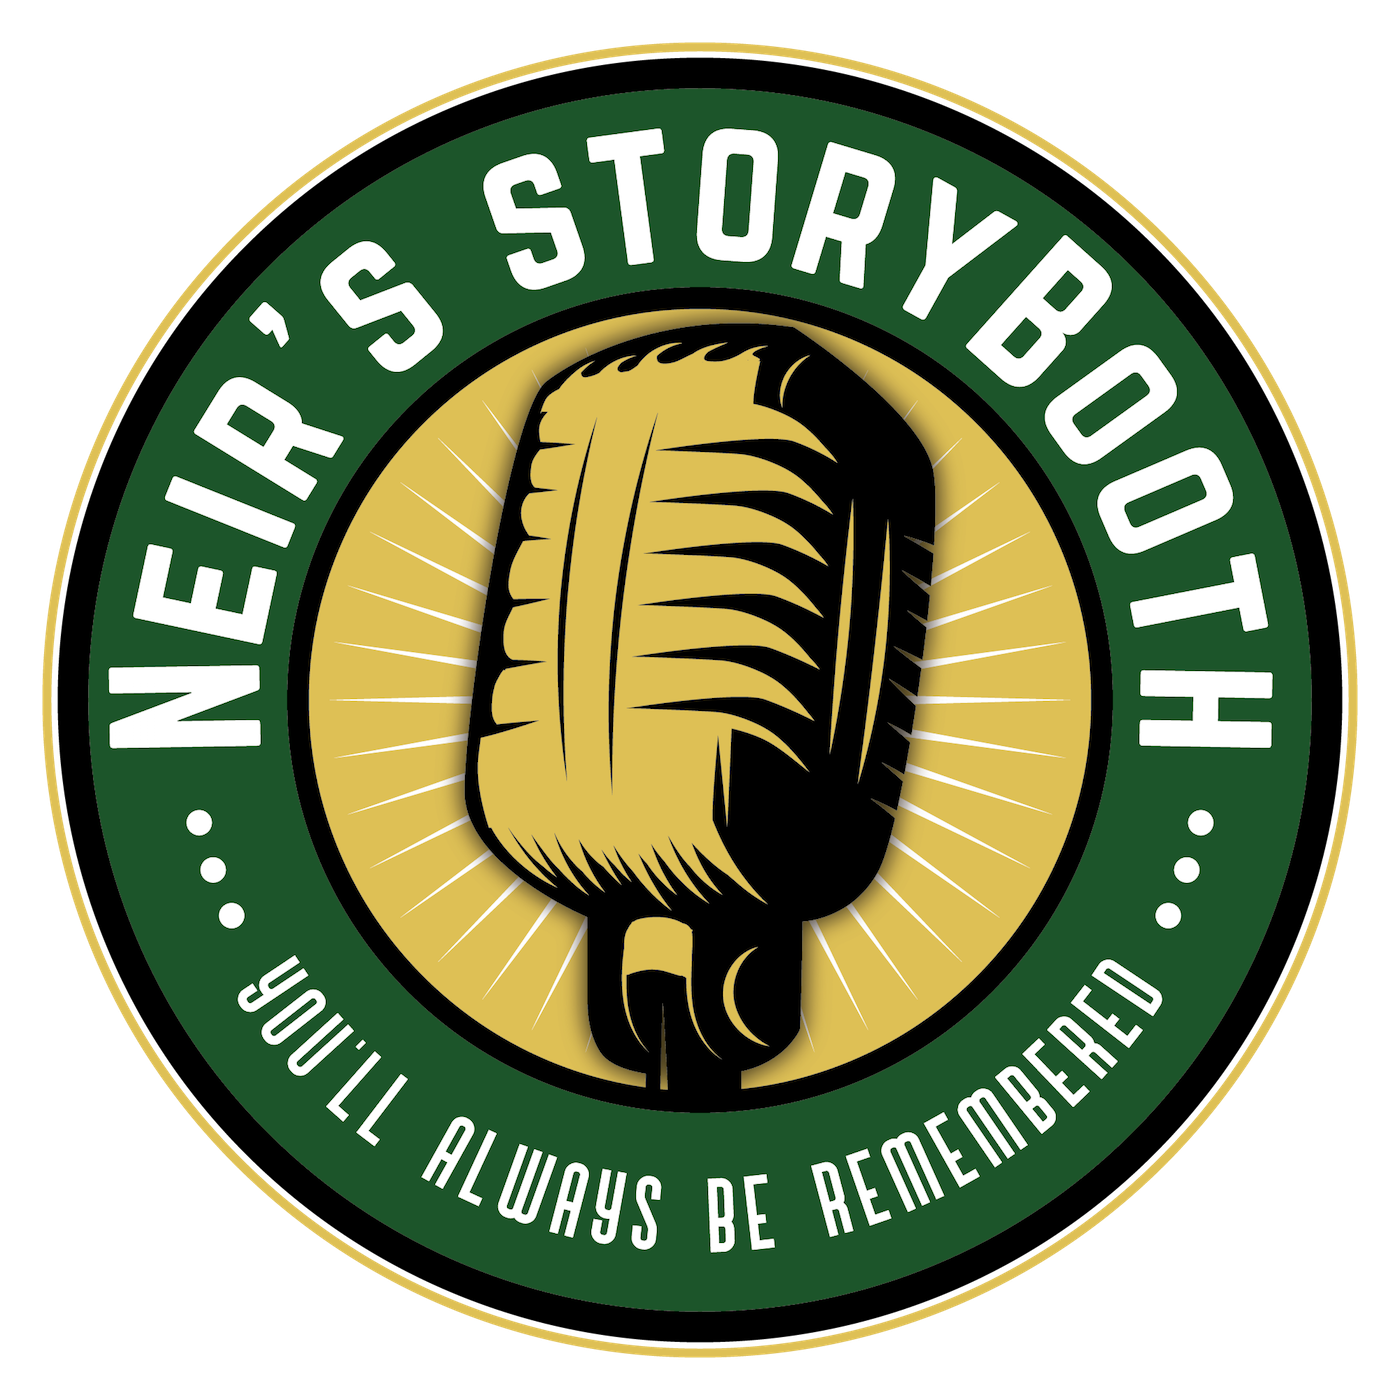 Neir's Story Booth show art